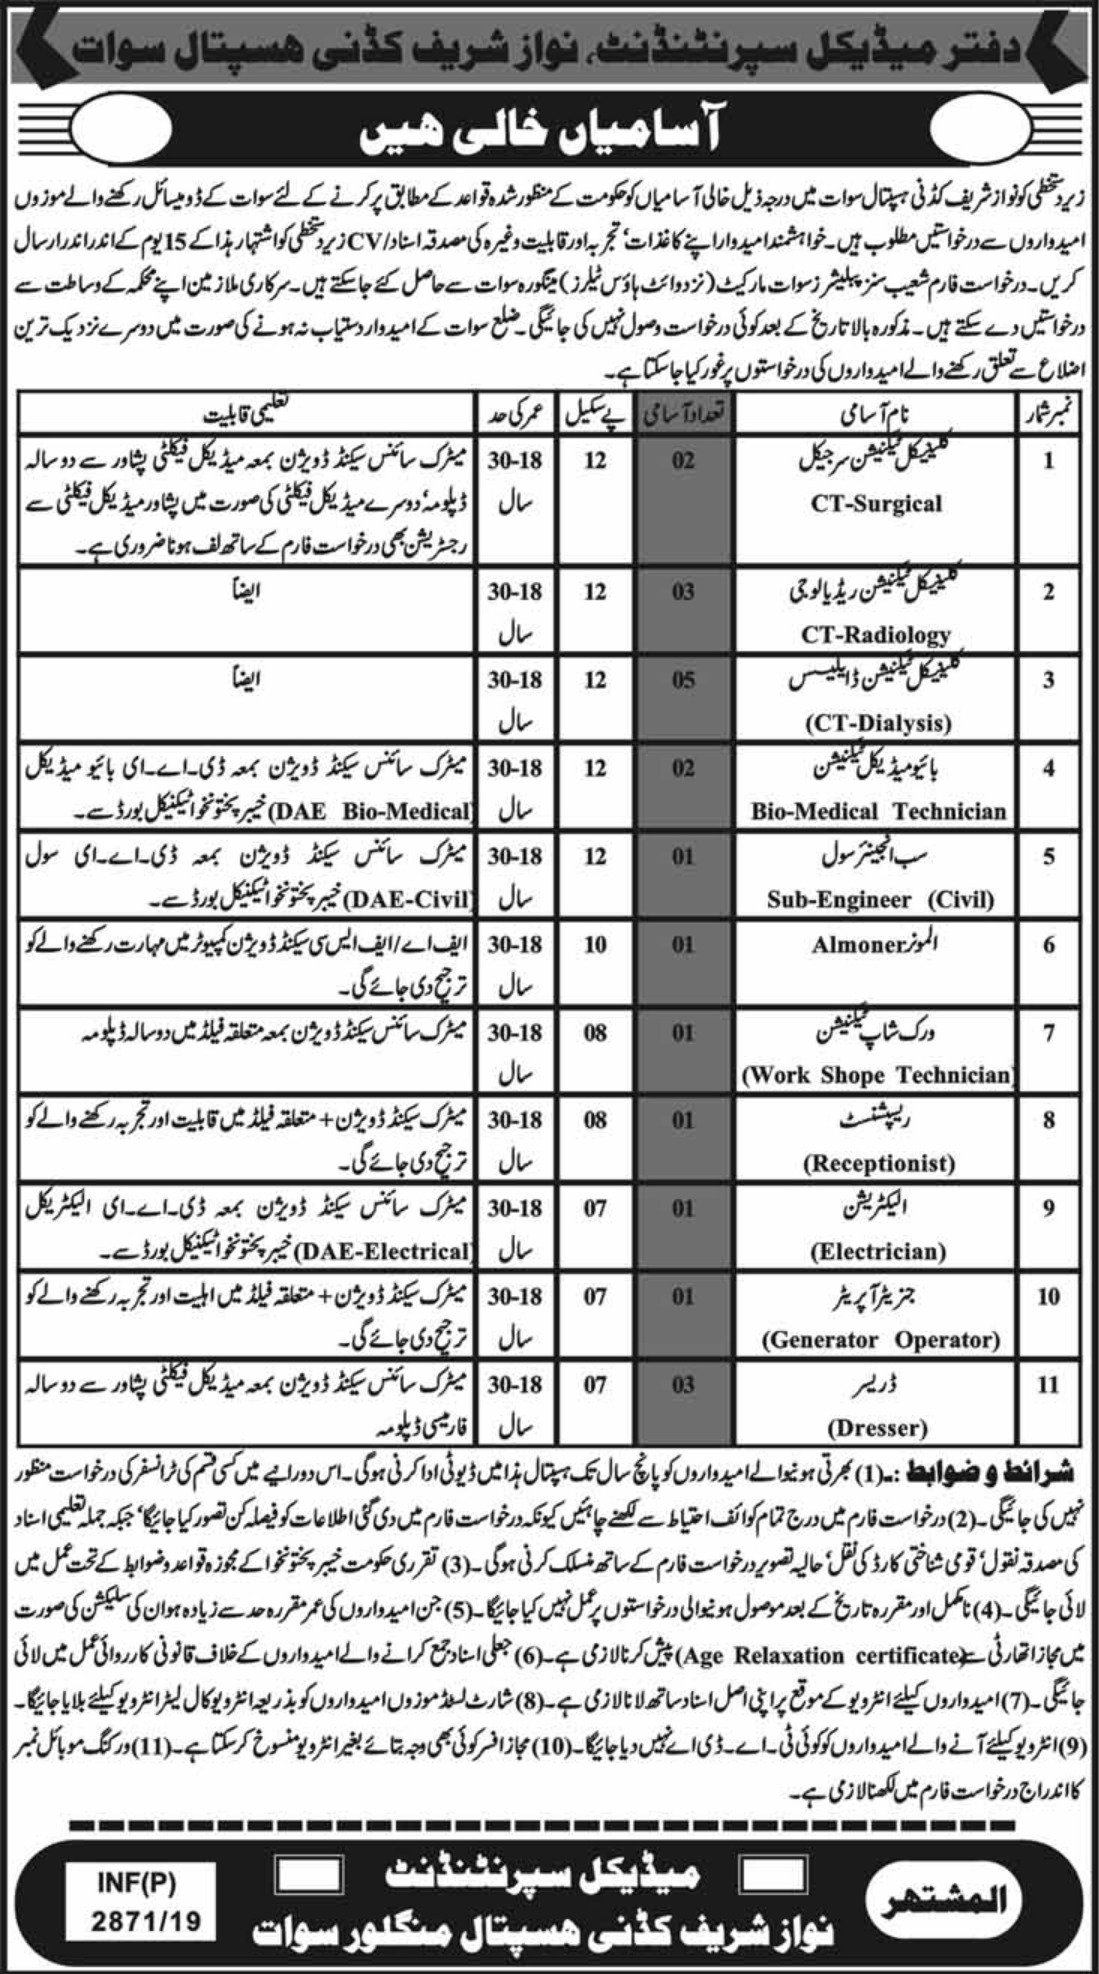 Nawaz Sharif Kidney Hospital Swat Jobs 2019 Khyber Pakhtunkhwa